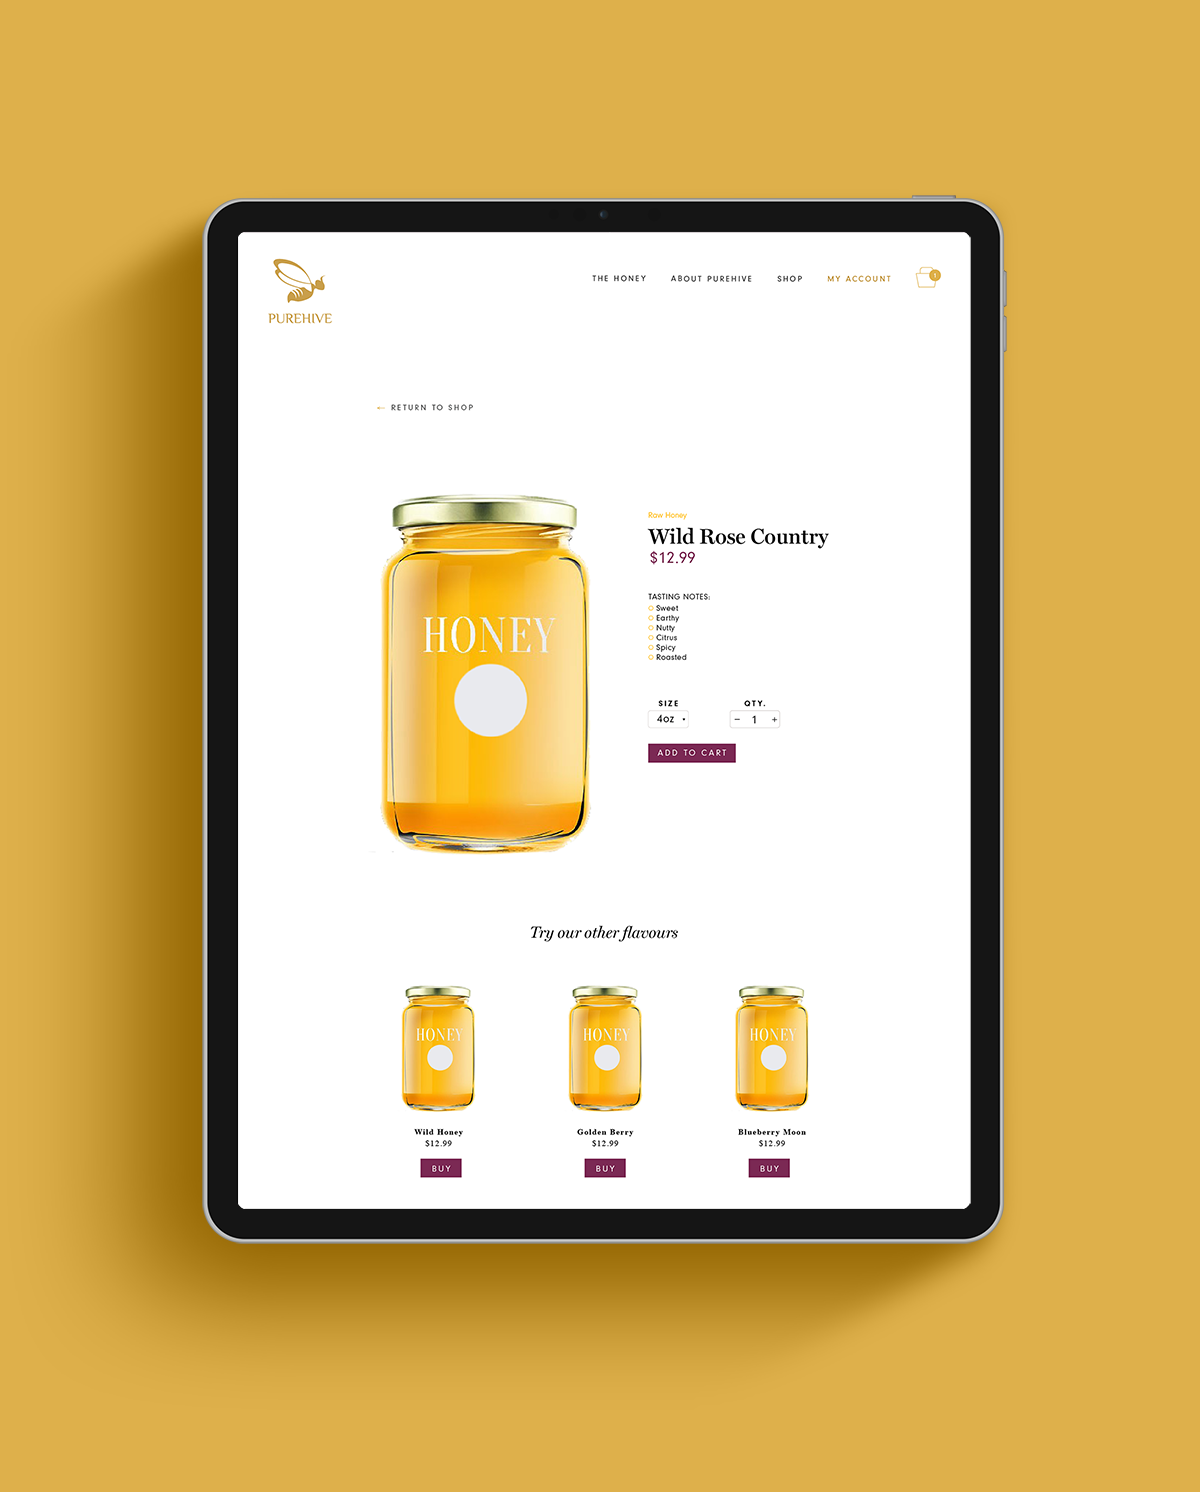 Purehive product page has been designed so that each button colour matches the product flavour.